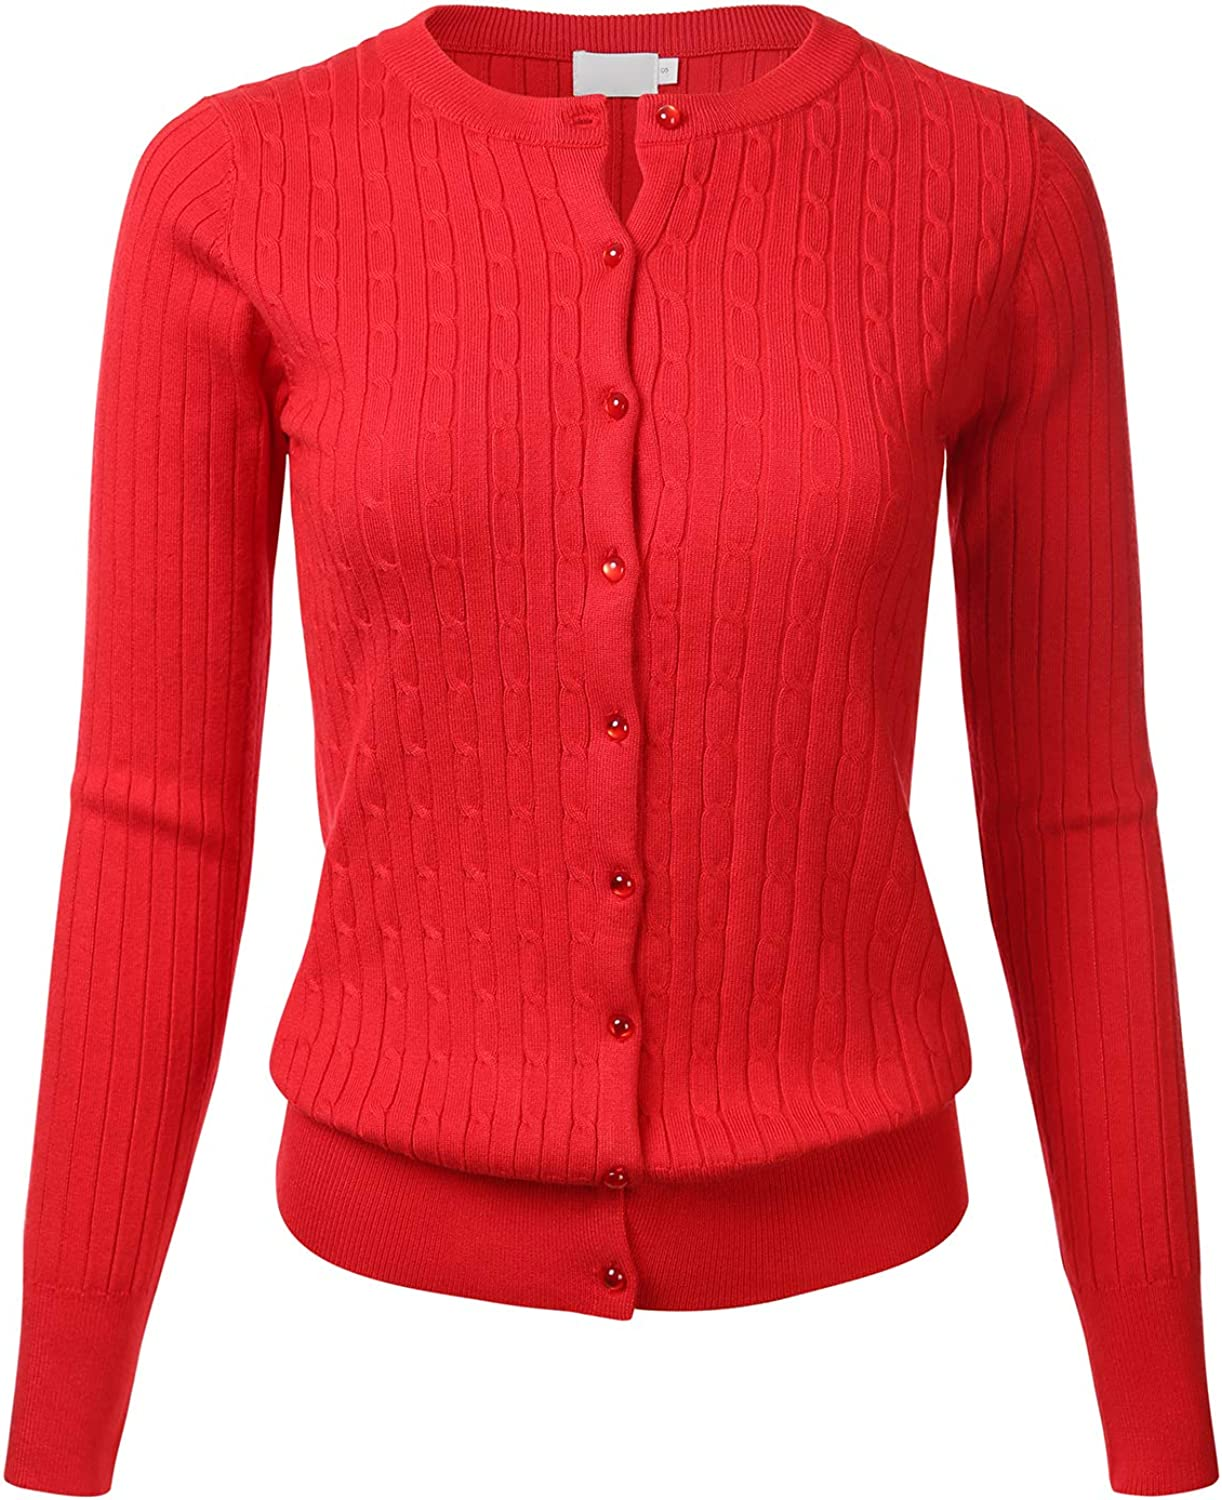 Women's Classic Gem Button Long Sleeve Crew Neck Cable Knit Fitted Cardigan Sweater (S3XL)